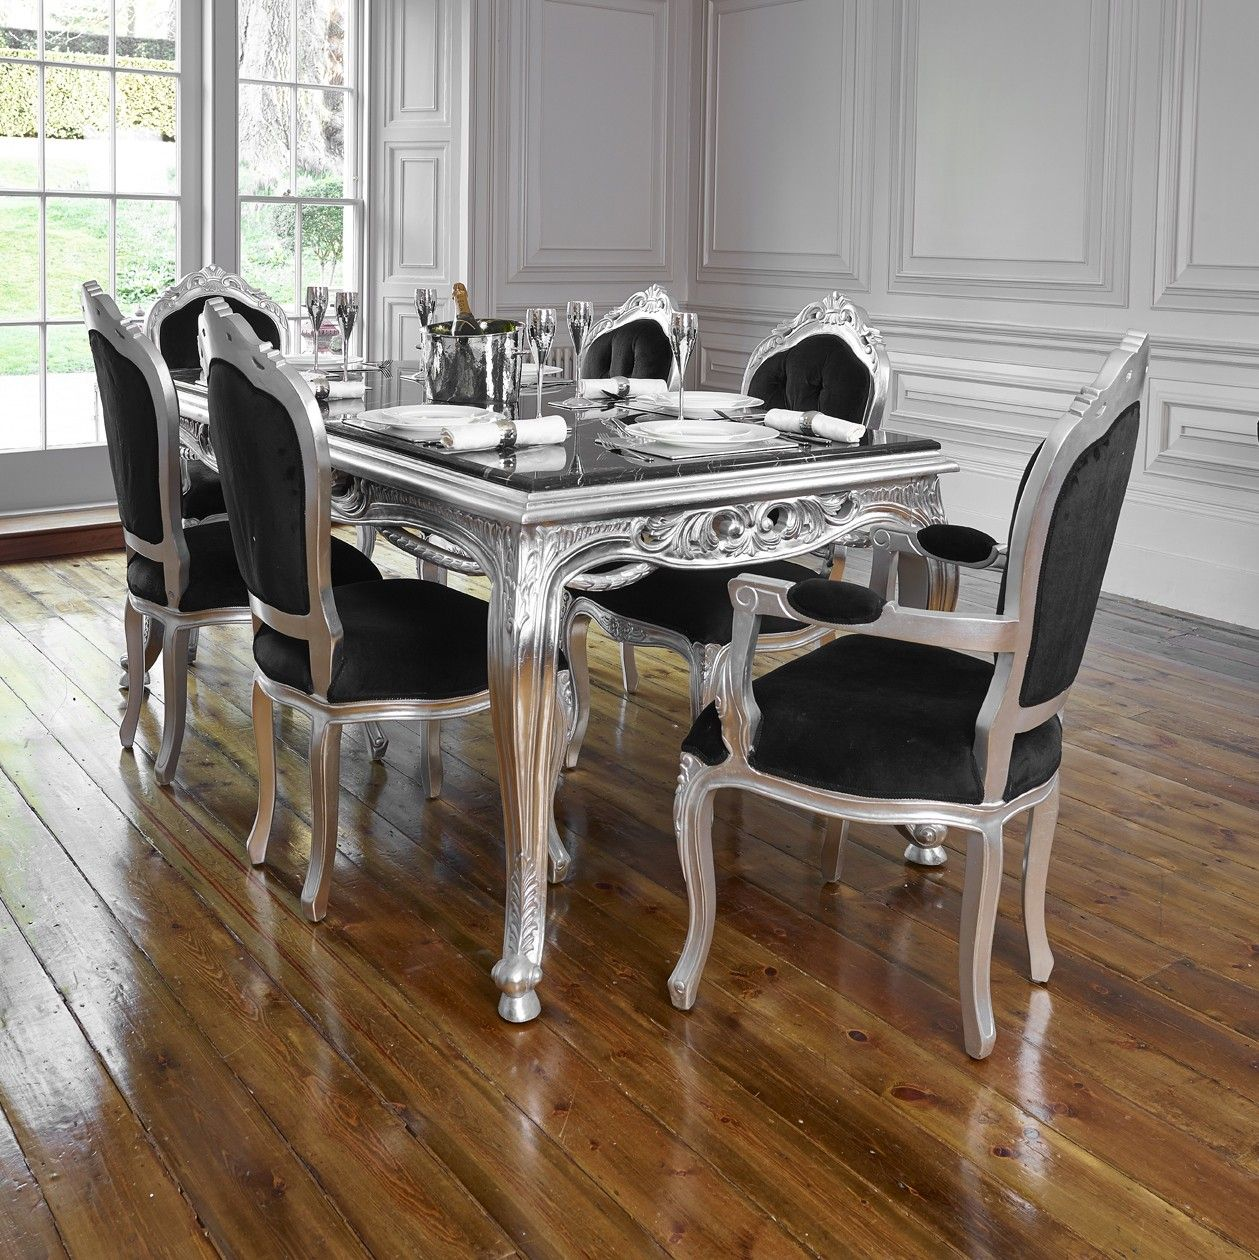 Rococo French silver leaf dining table set with chairs. Rococo French silver leaf dining table set with chairs   chalk